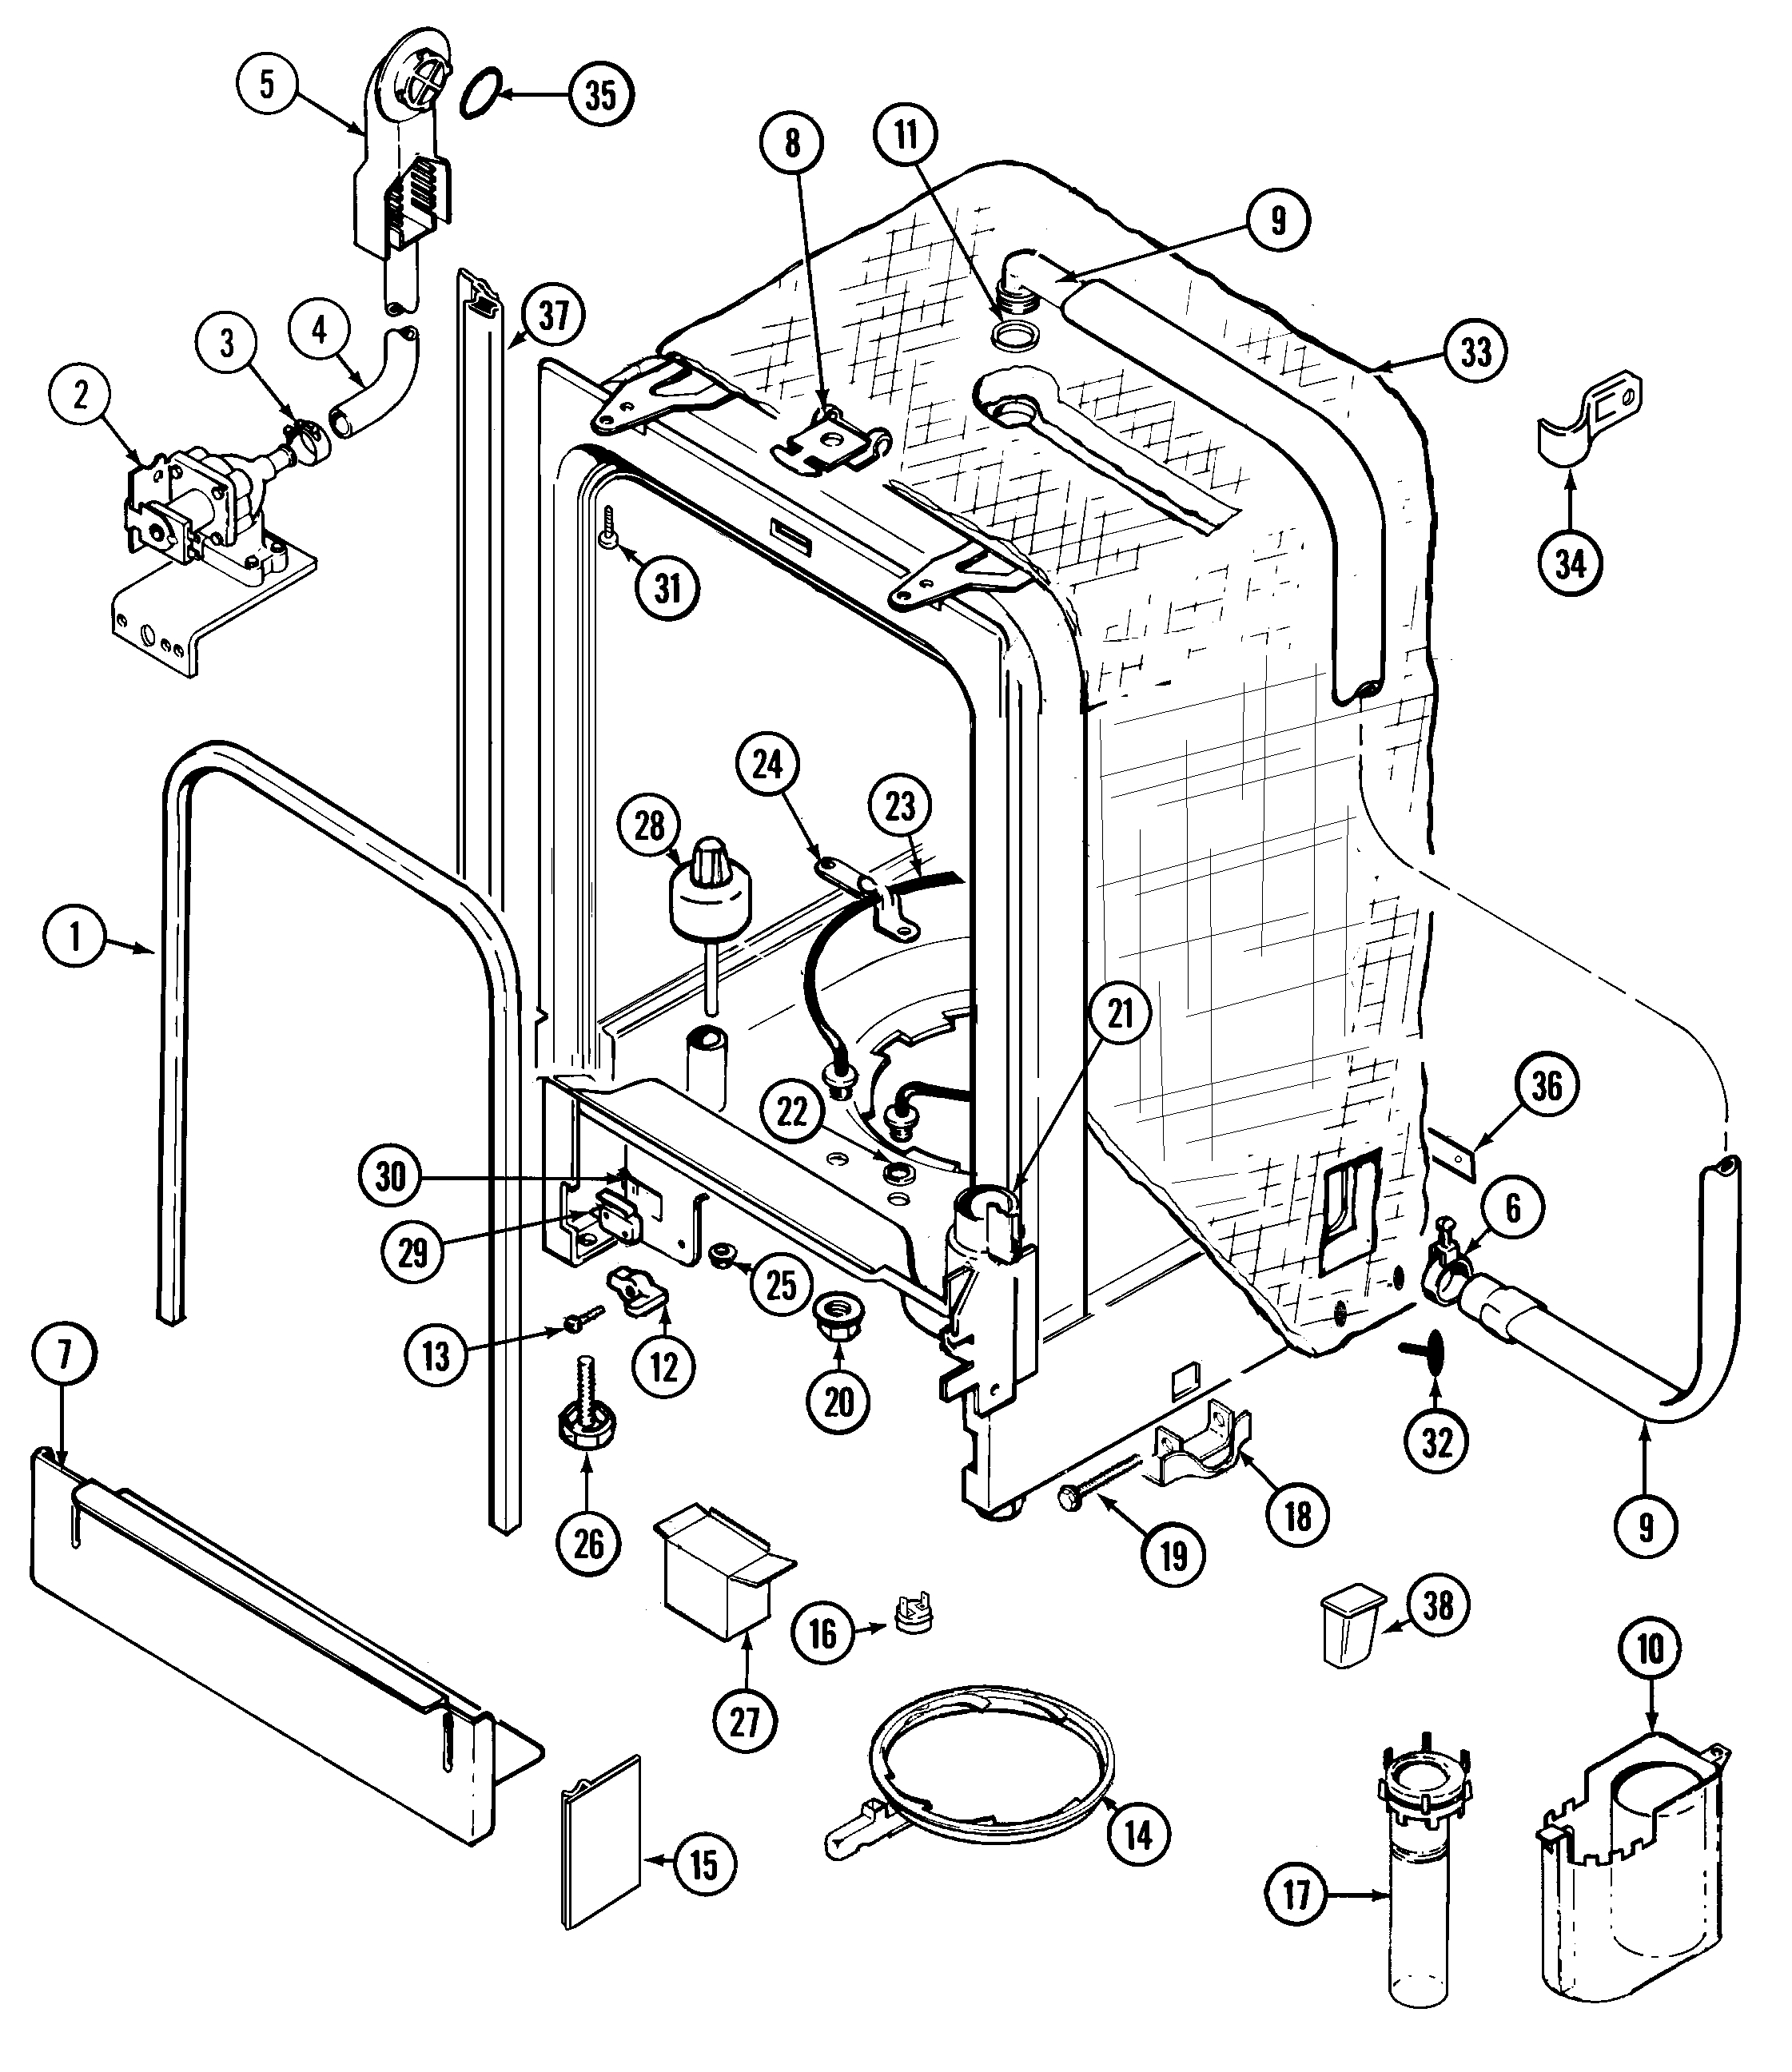 whirlpool dishwasher wiring diagram Collection-whirlpool dishwasher parts diagram Lovely Astounding Kenmore Appliance Parts Diagrams Tags Kenmore 12-o